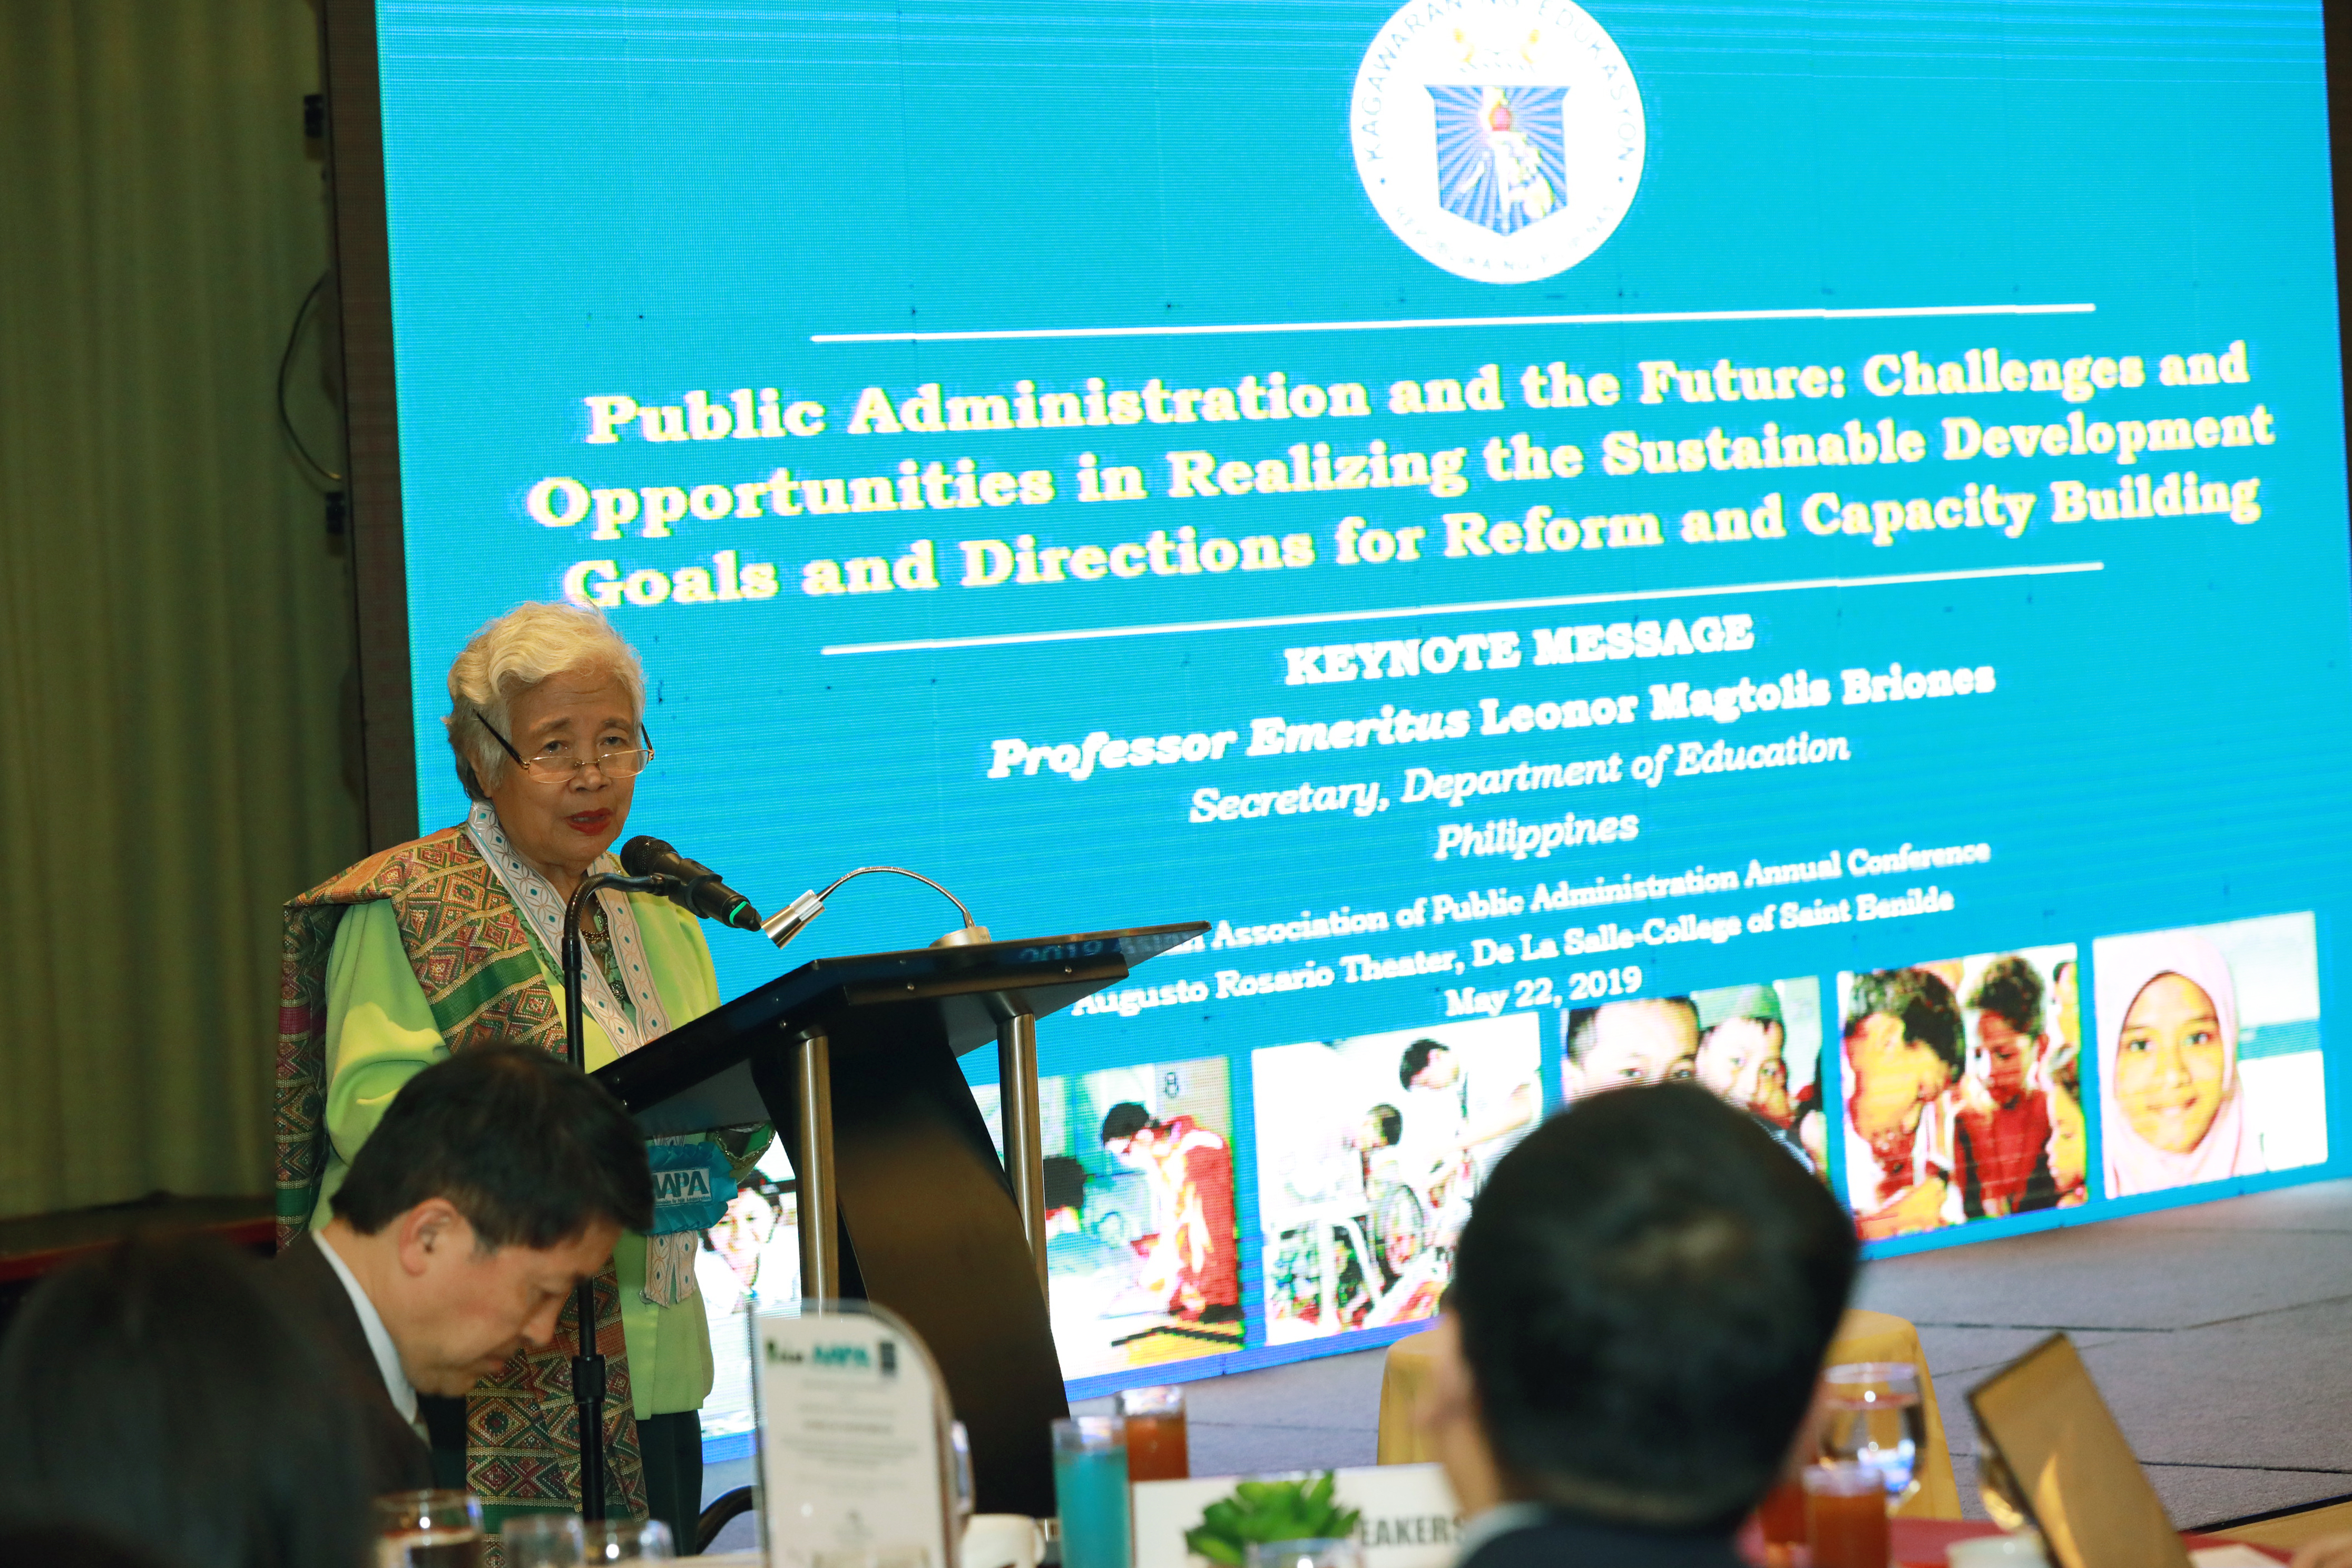 Briones keynotes annual conference on public administration